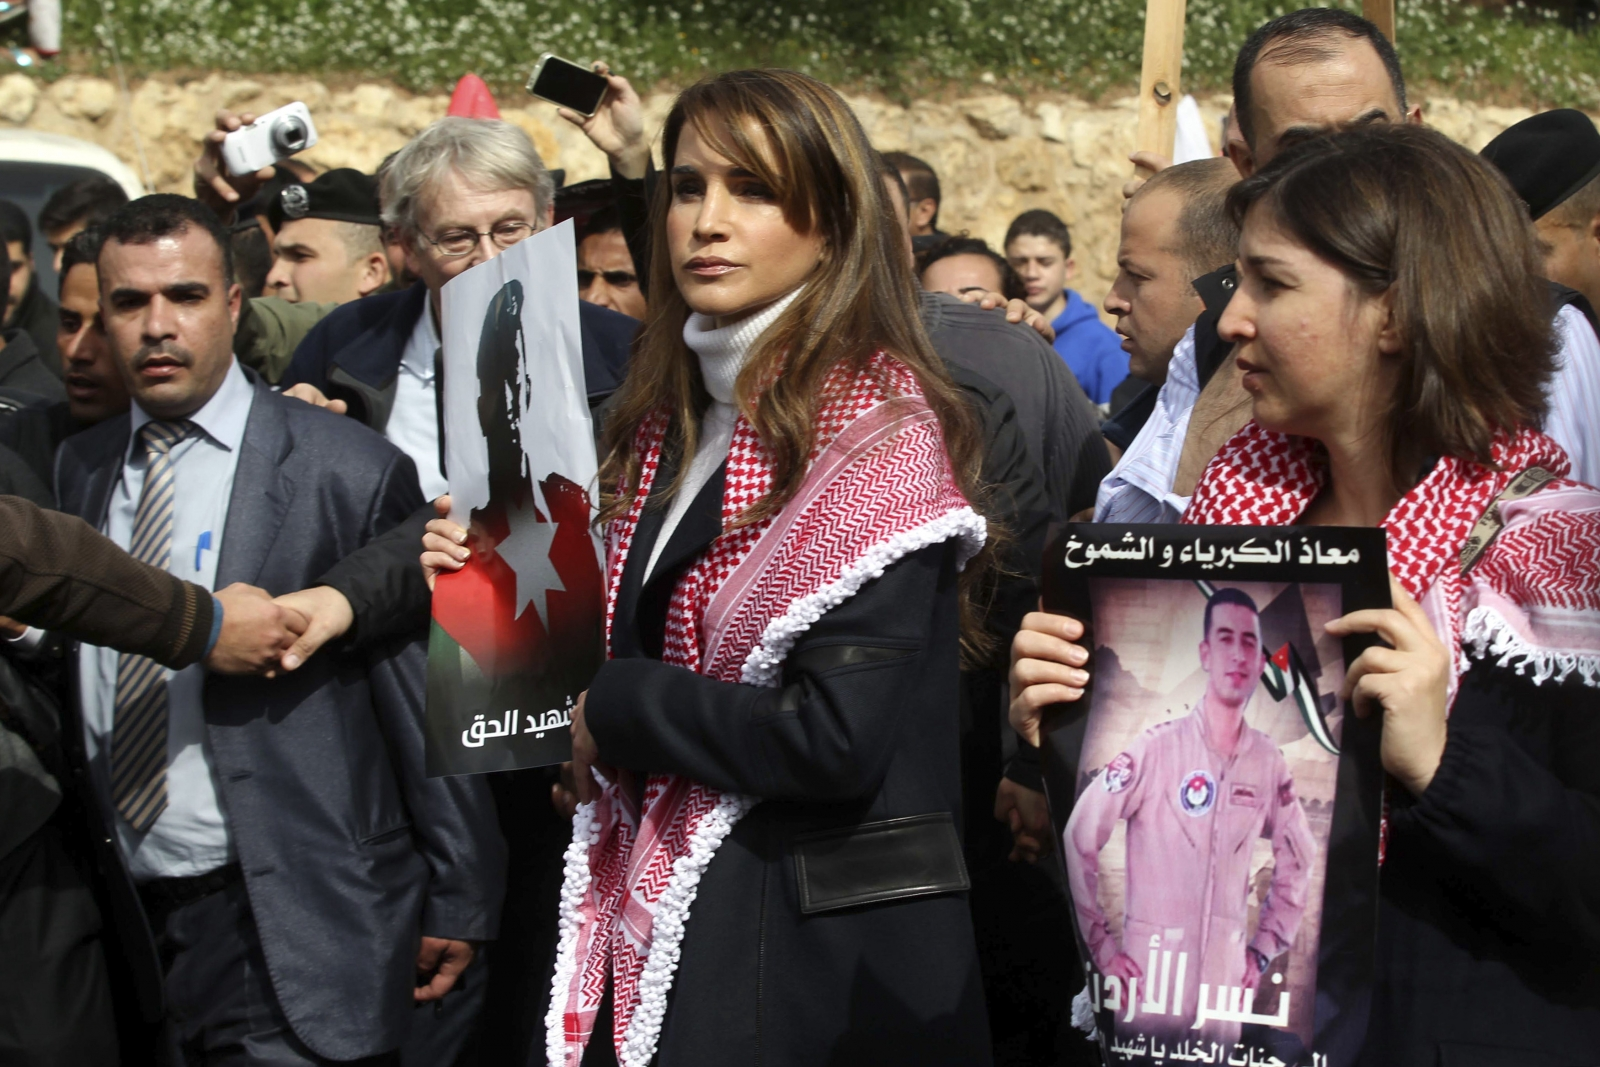 """Jordan's Queen Rania (C) holds a picture of recently executed Jordanian pilot Muath al-Kasasbeh, with the words in Arabic reading """"Muath is a martyr of right"""", during a march after Friday prayers in downtown Amman"""